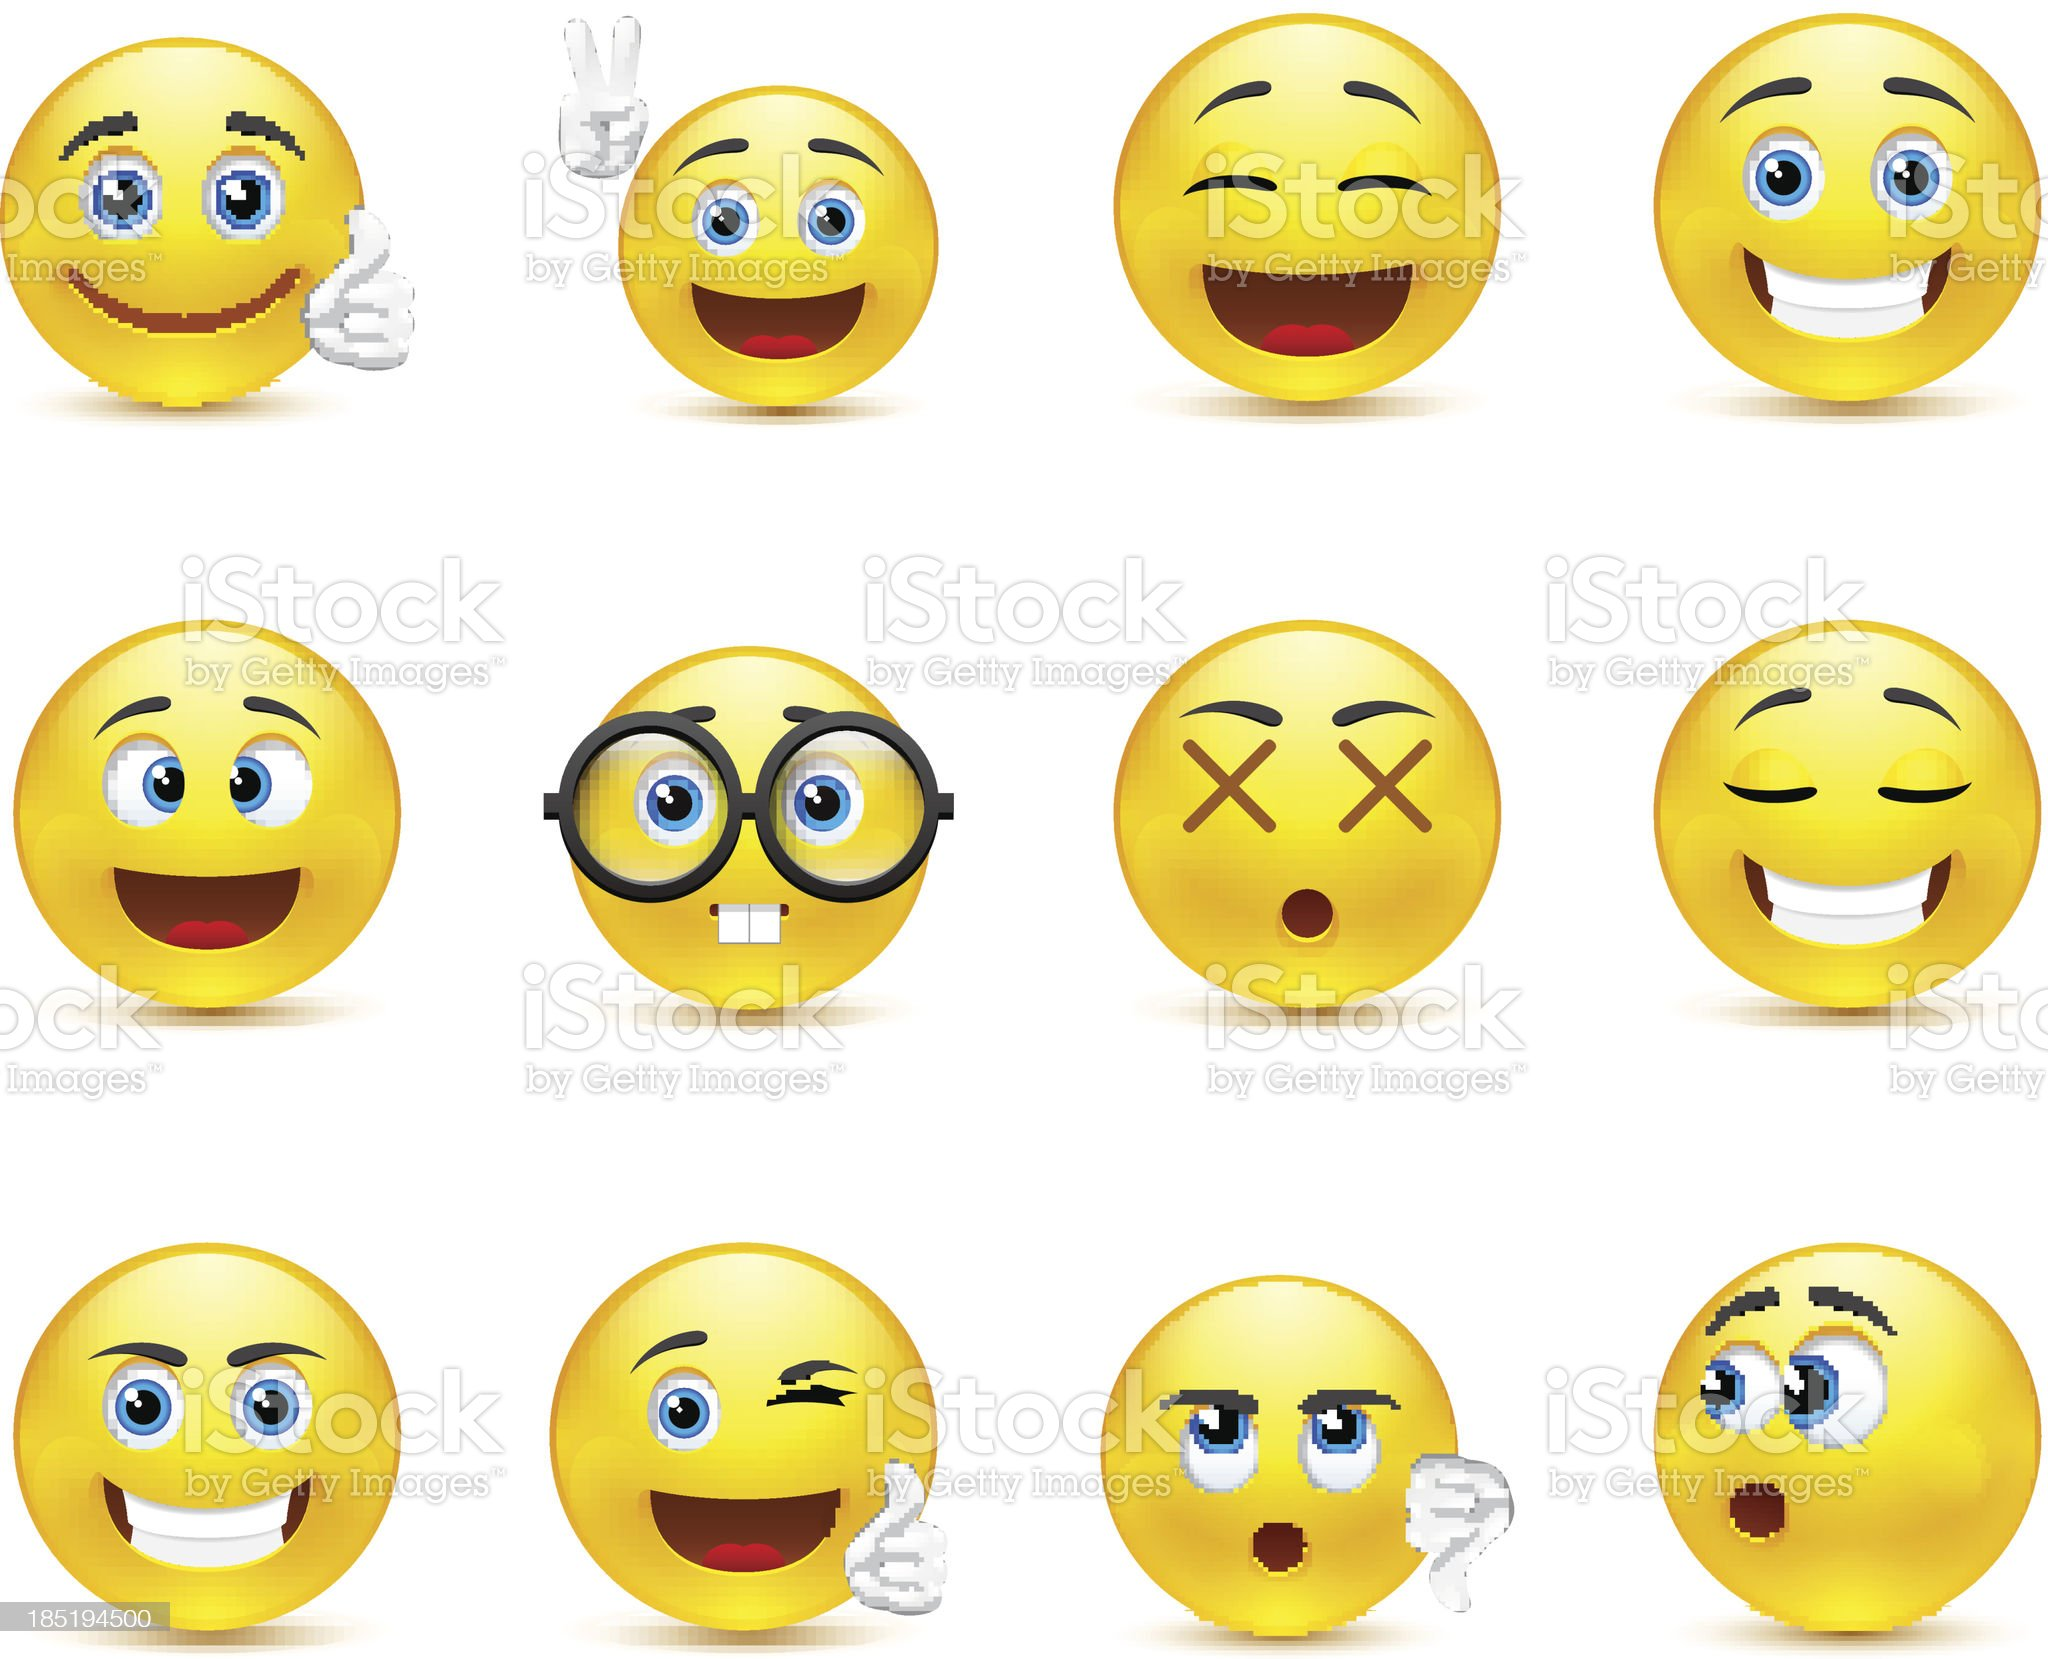 smiley faces images expressing different emotions royalty-free stock vector art